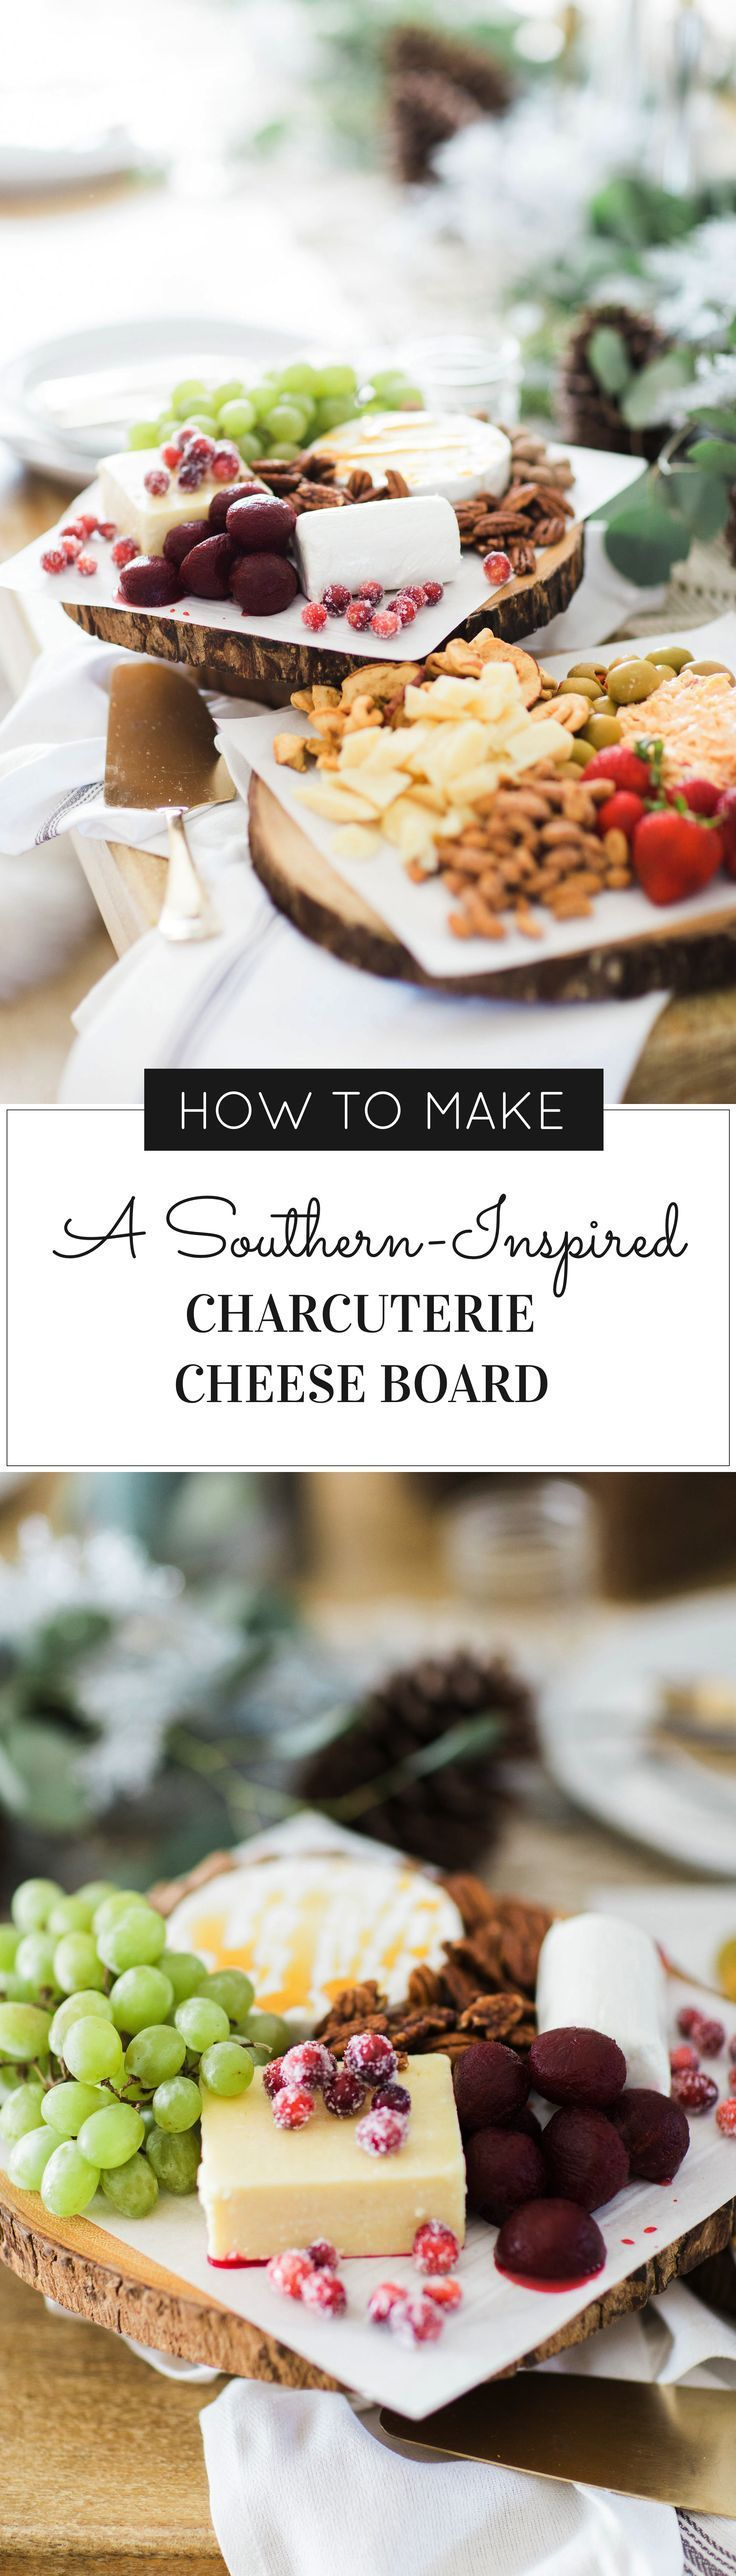 How to Make An EPIC Southern-Inspired Charcuterie Cheese Board (the easy way). Click through for the how-to. | DIY party ideas | entertaining tips and tricks | party food and recipes | http://glitterinc.com | /glitterinc/